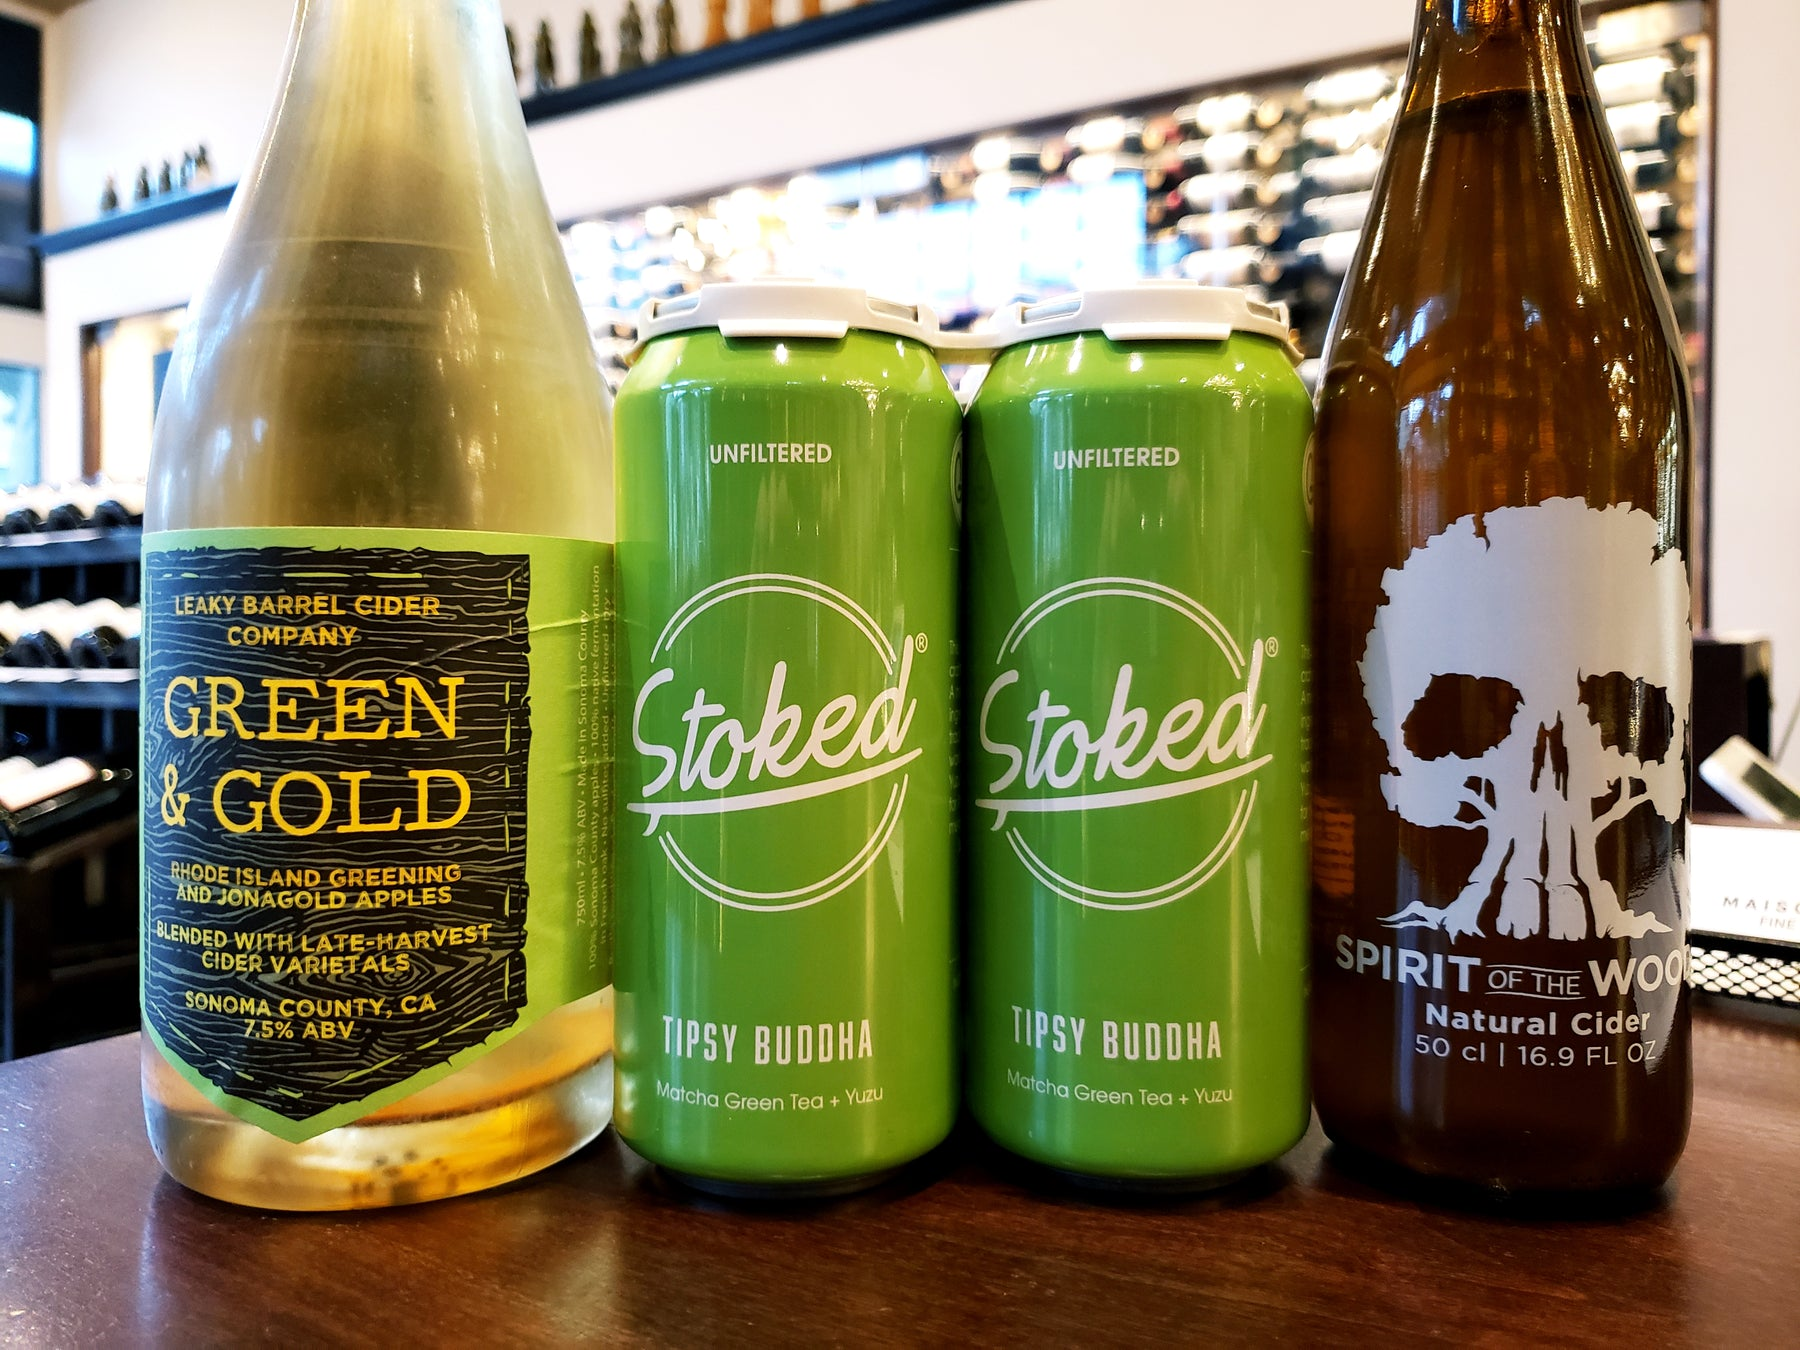 Cider | Free Tasting Thursday, April 4th 5-7pm